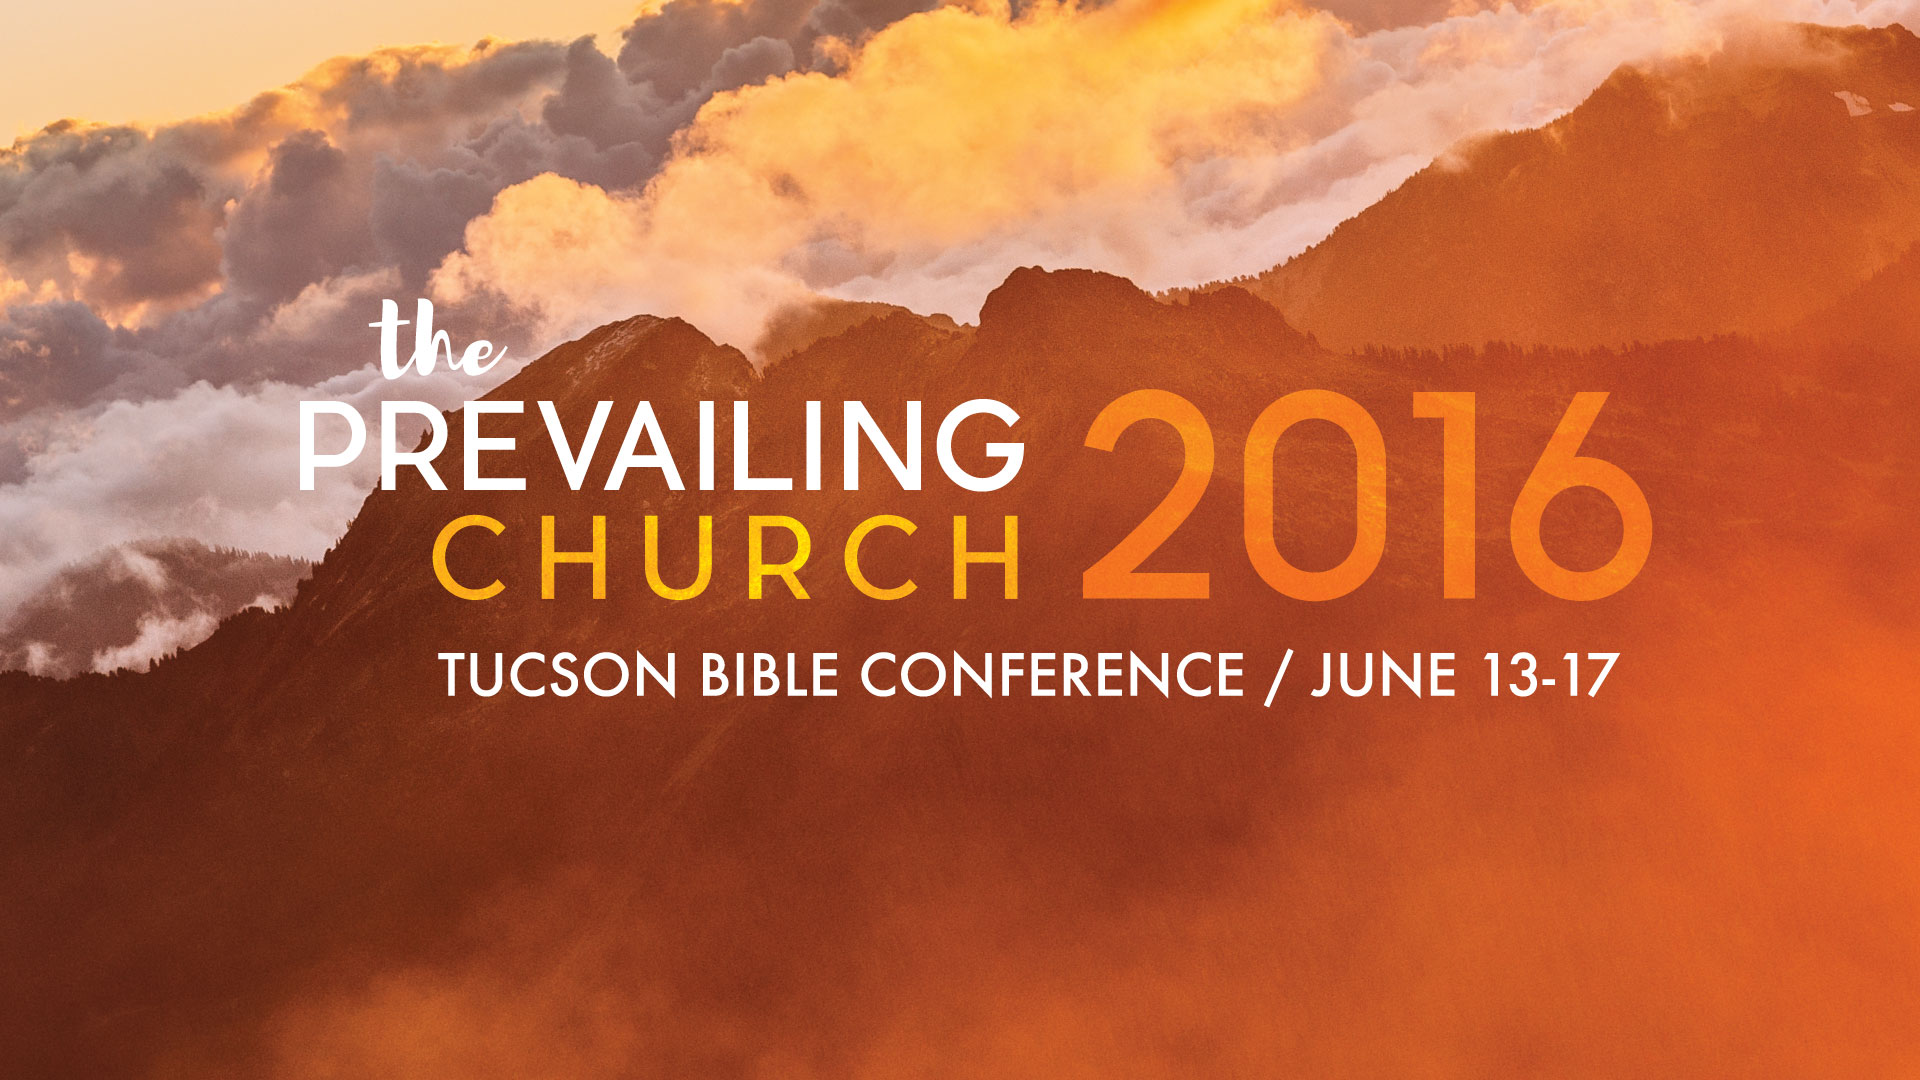 Tucson-Bible-Conference-2016